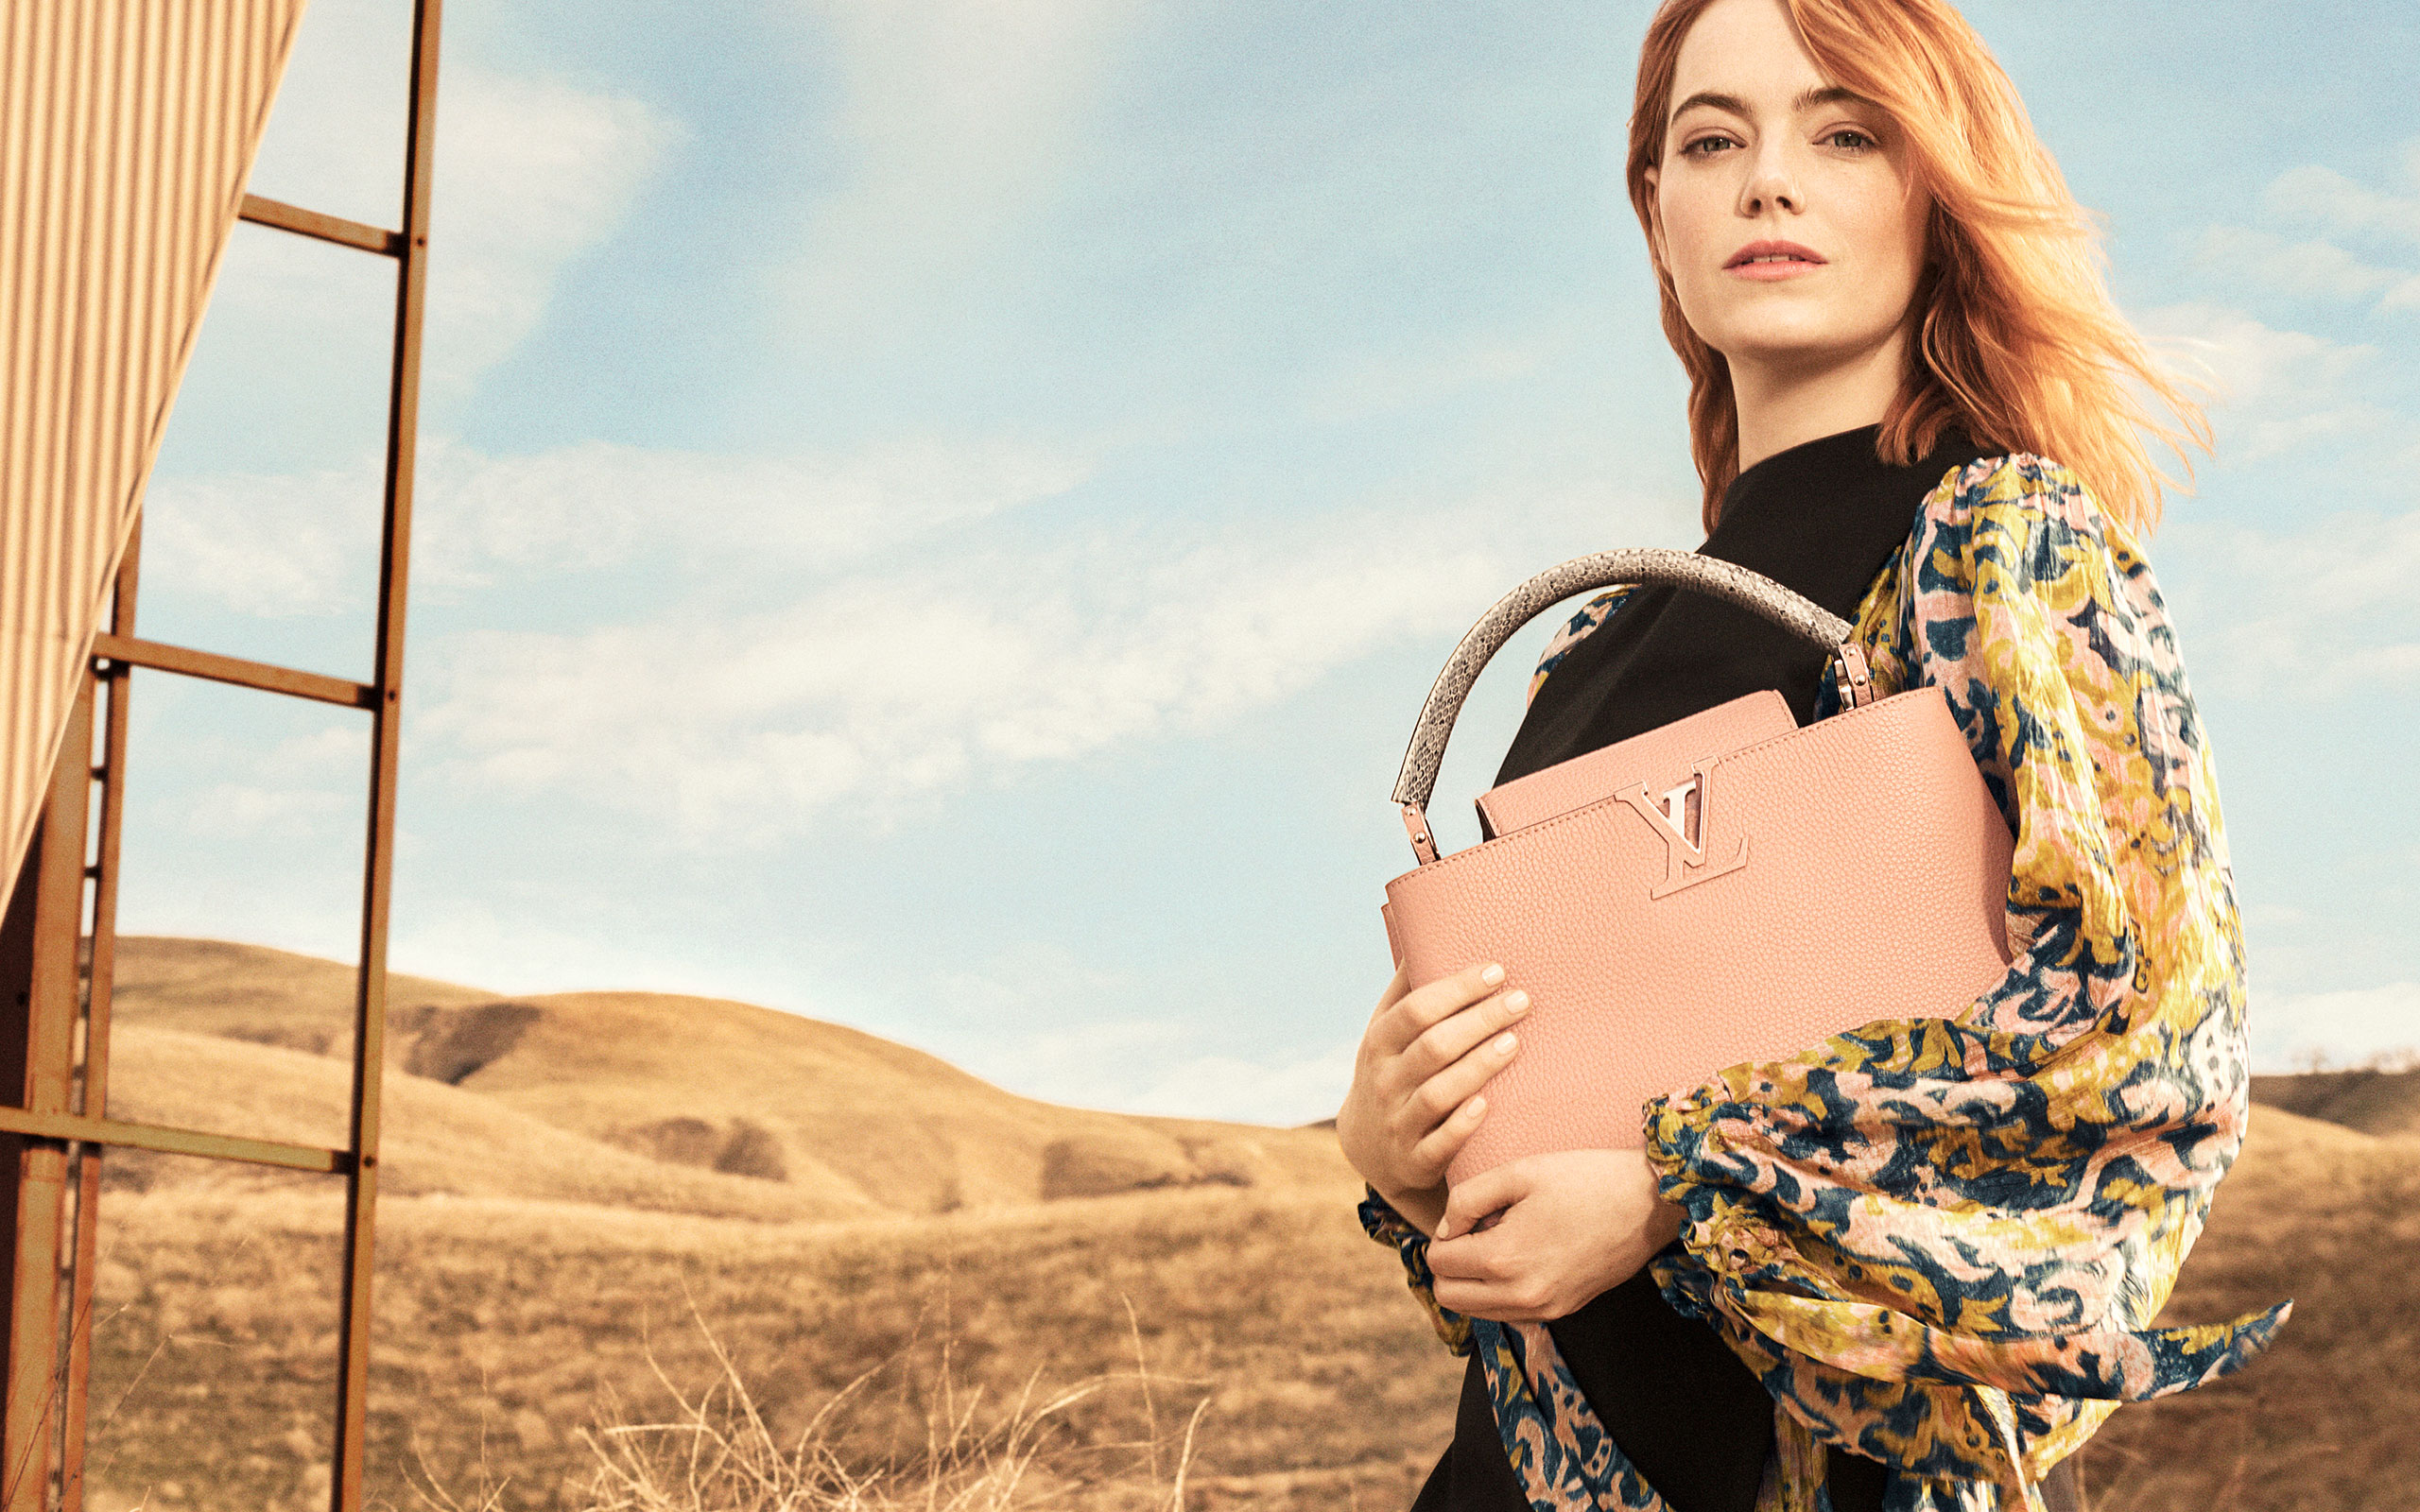 Emma Stone Fronts Louis Vuitton's Latest Campaign Shot By Craig McDean